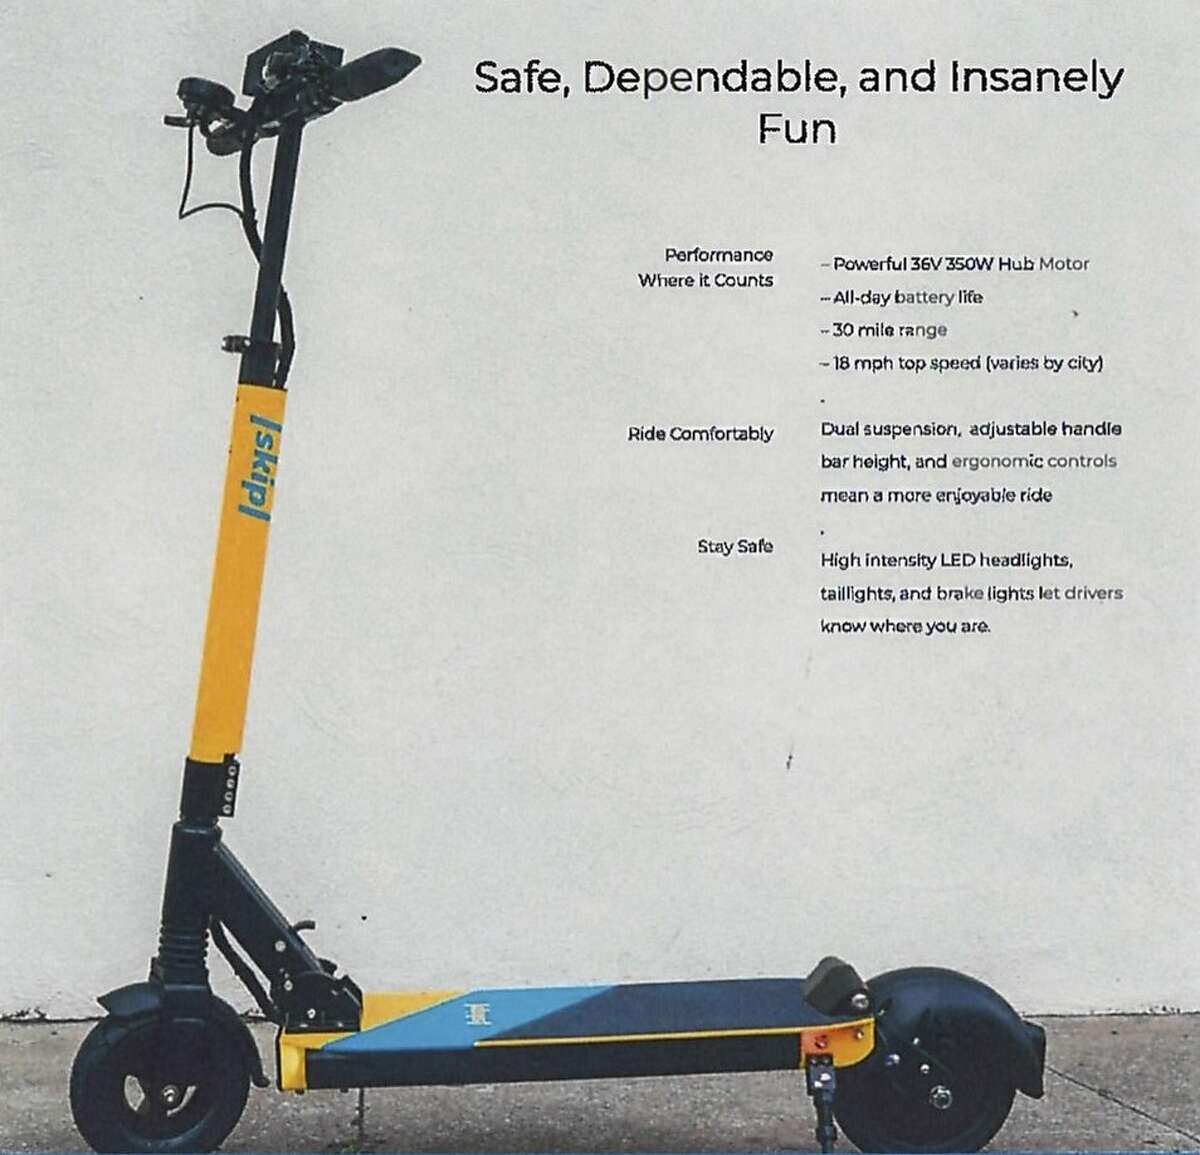 Skip of San Francisco, formerly known as Waybots, submitted an application in June 2018 to the San Francisco Municipal Transportation Agency to deploy stand-up scooters. Here's what one looks like.